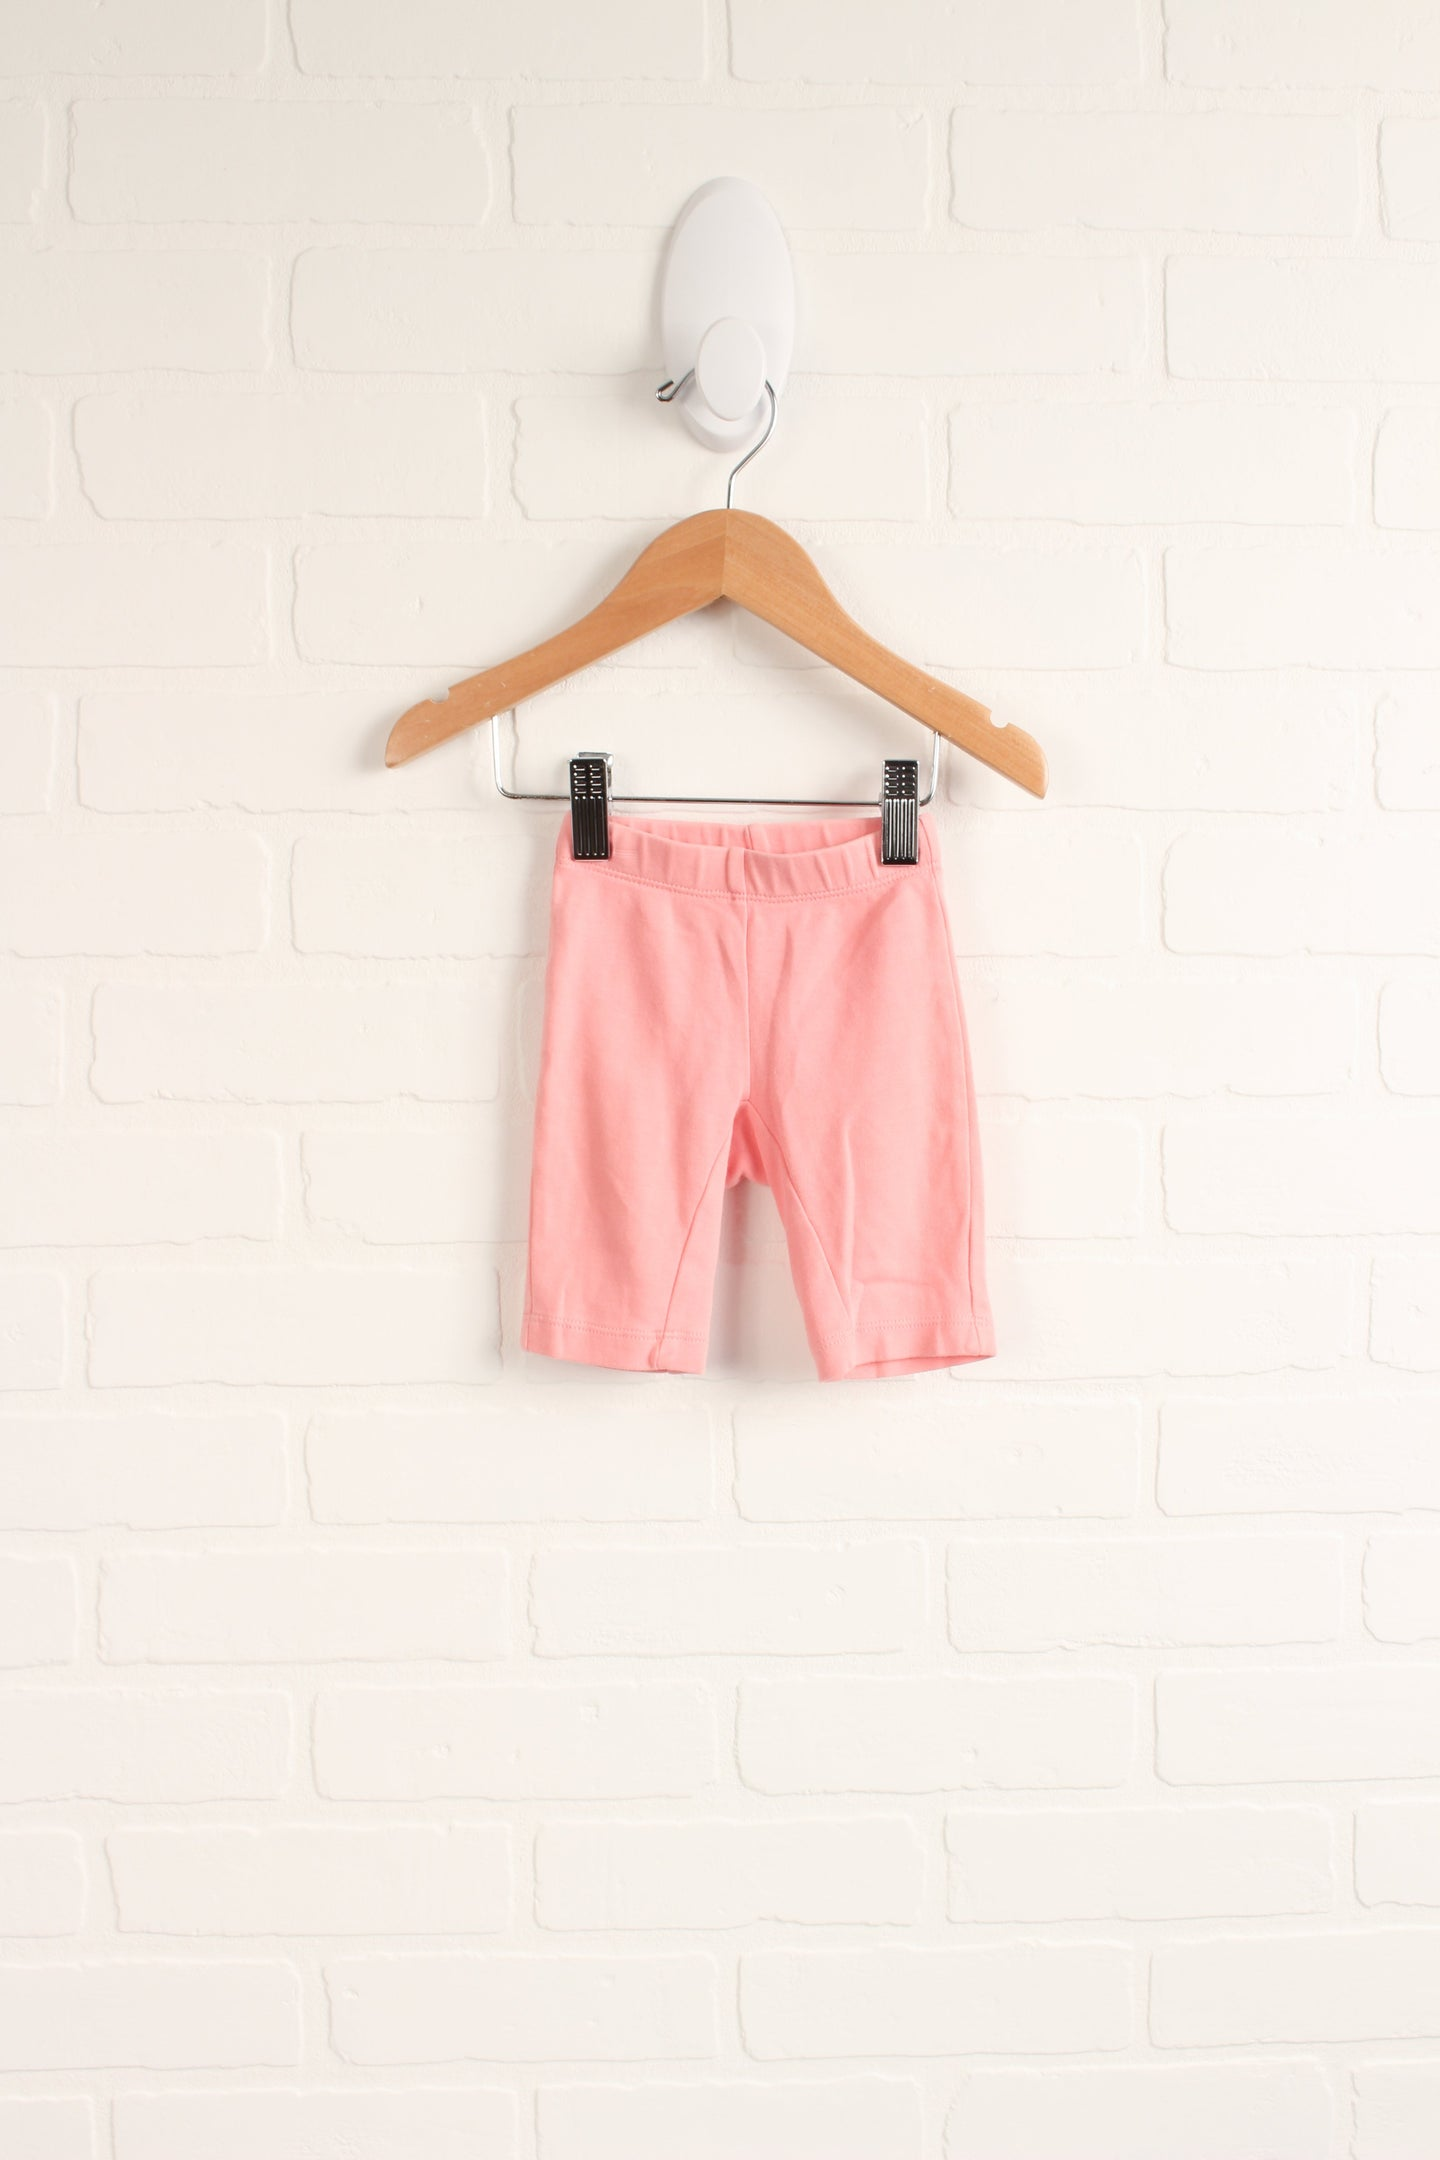 Pink Leggings (Size NB/Up to 8lbs)